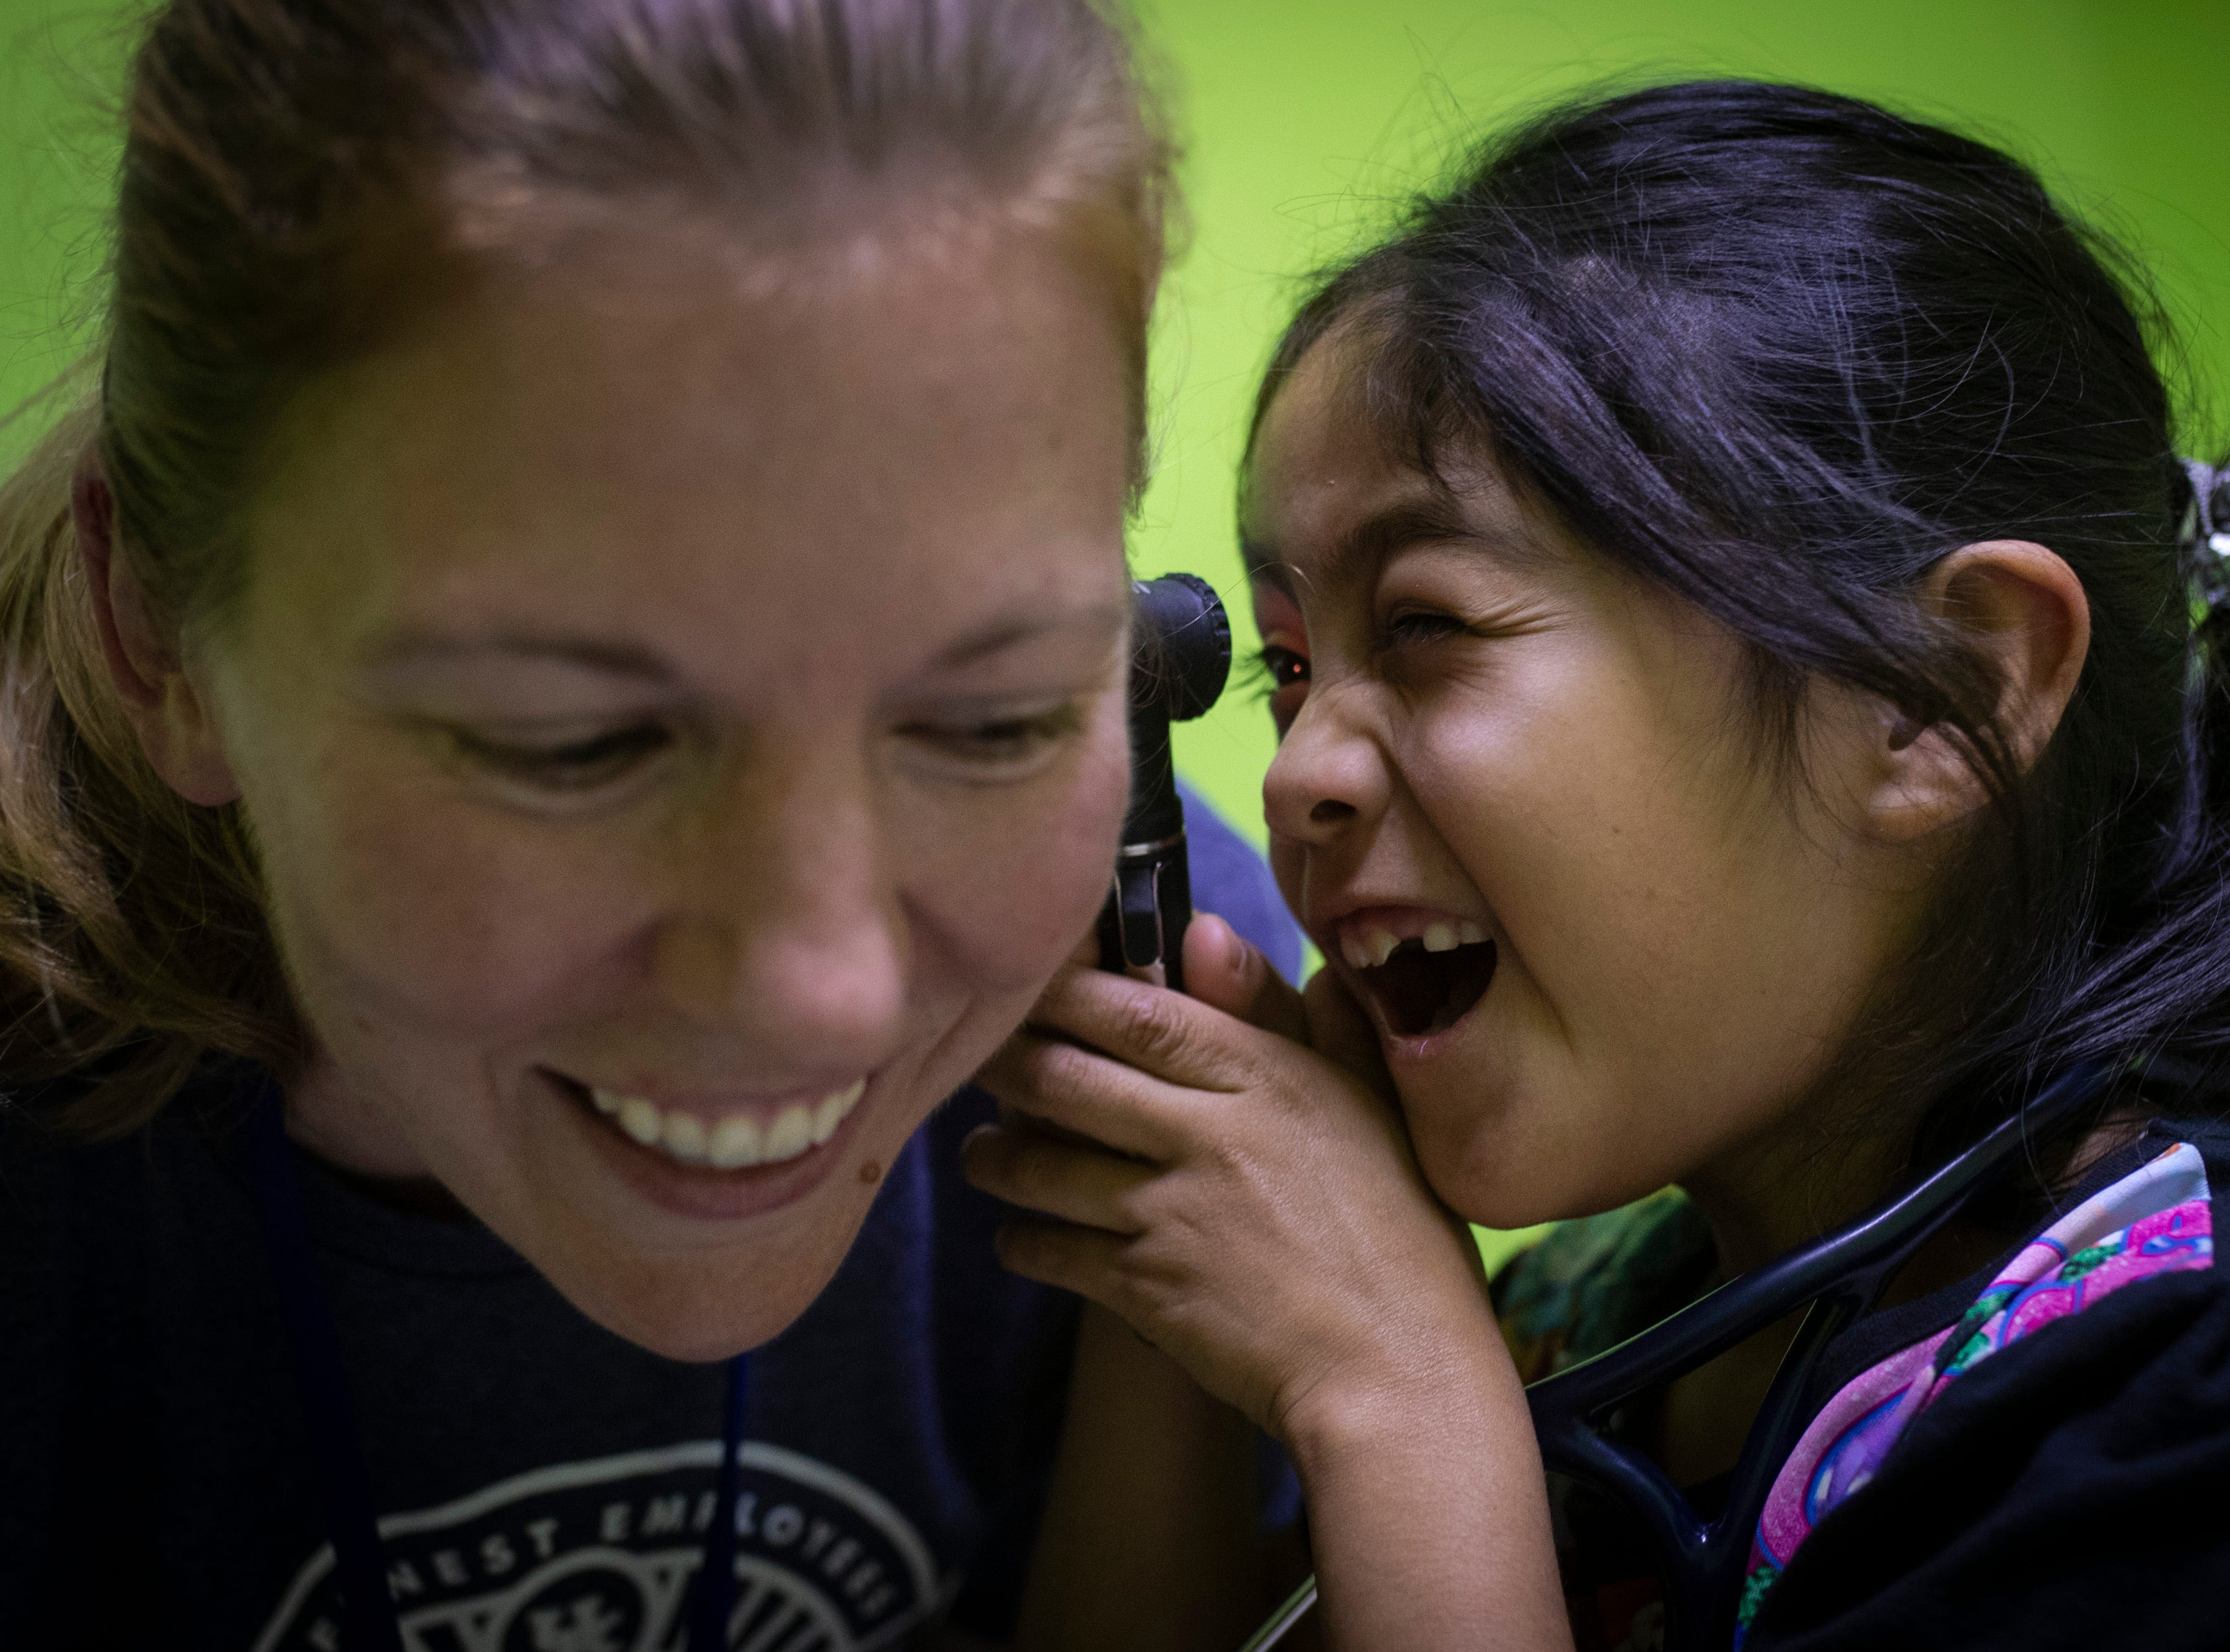 U.K. Healthcare's Dr. Heidi Frazier, left, has a laugh as patient Clara Maribel Caal Sep. 8, gives her a check-up of her own. Jan. 22, 2019